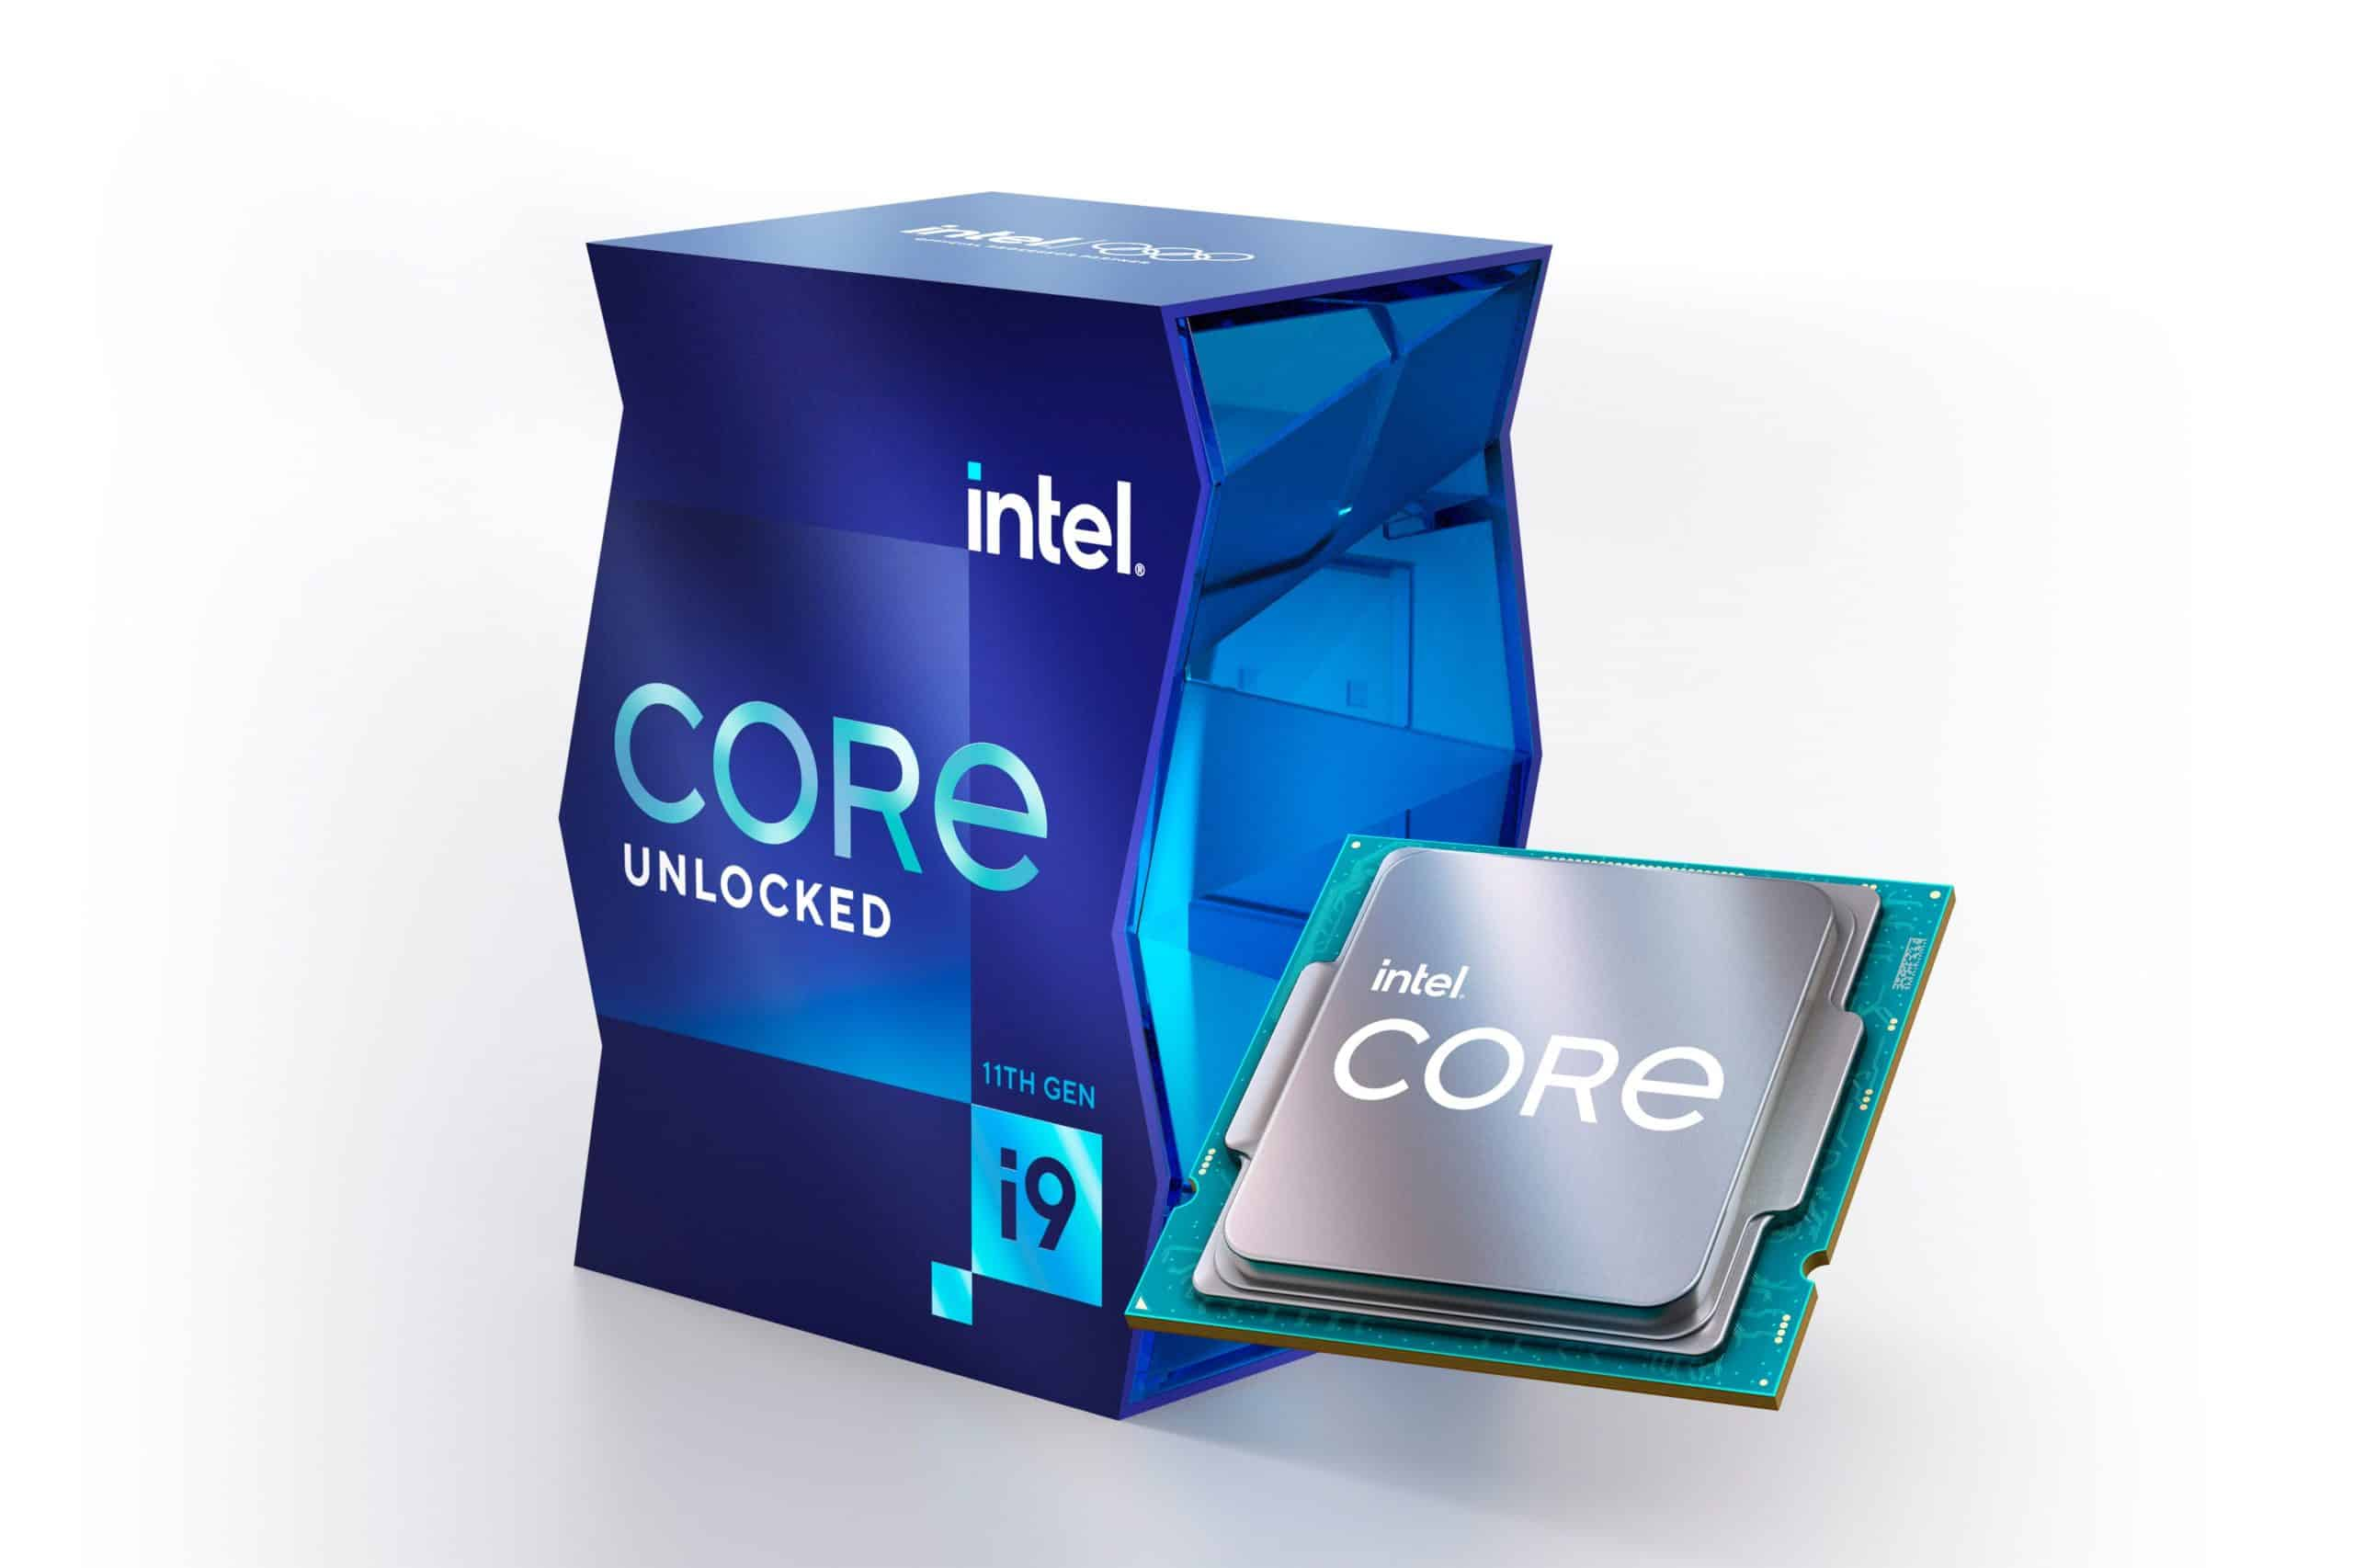 Intel announces the worldwide launch of the 11th Generation of Intel Core processors